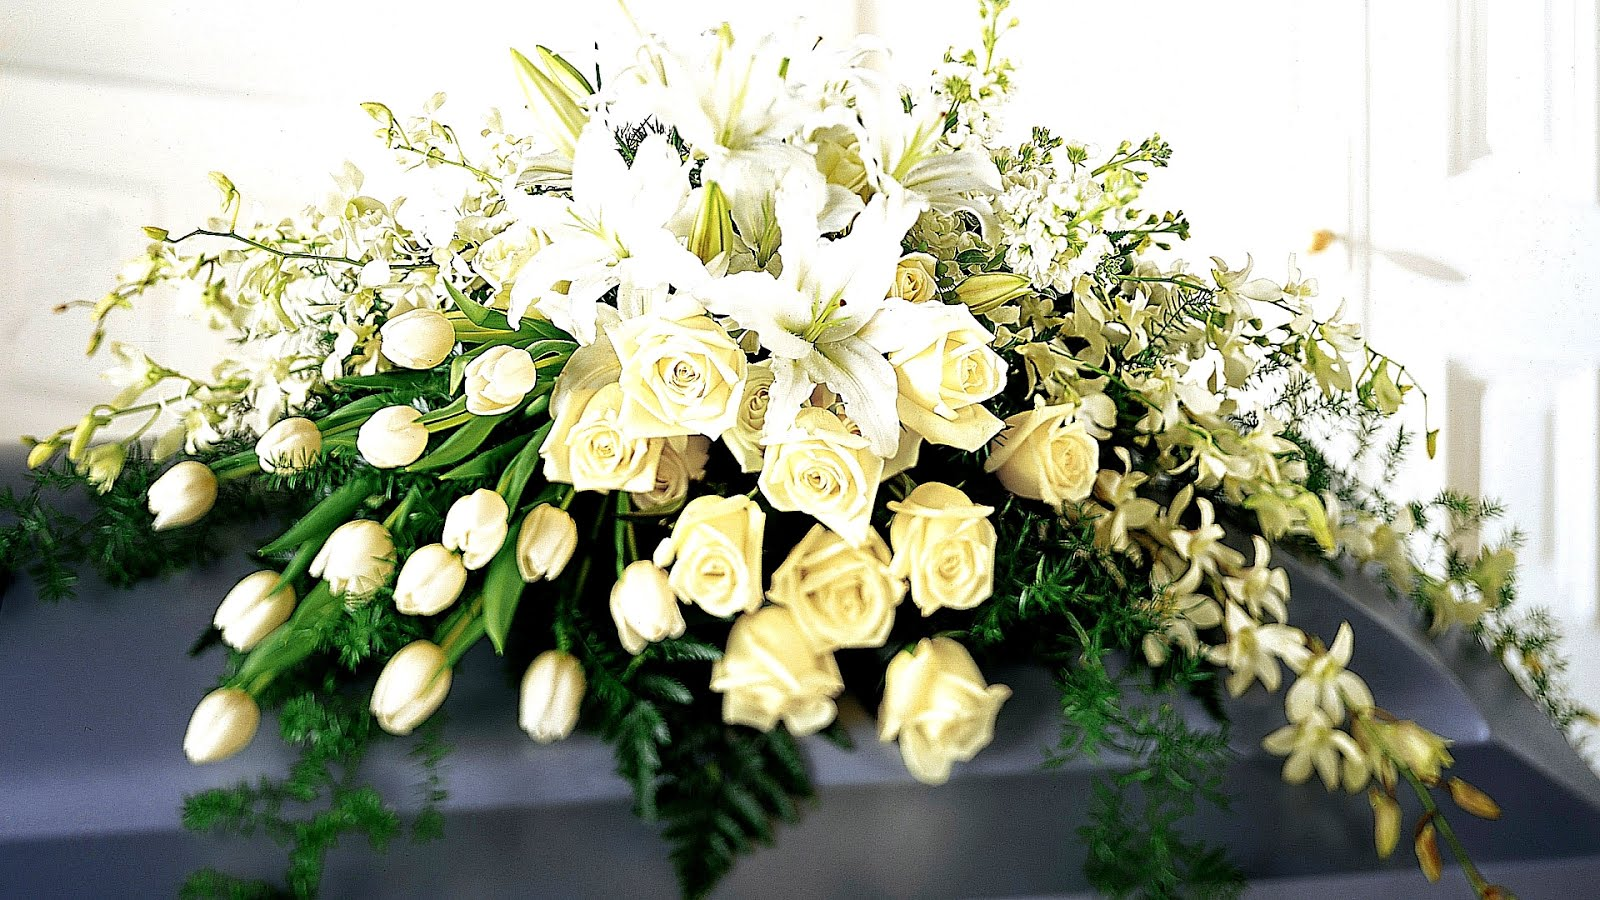 Flower funeral home yonkers ave ny sim home flower funeral home yonkers ny images wallpaper hd flowers choice image izmirmasajfo